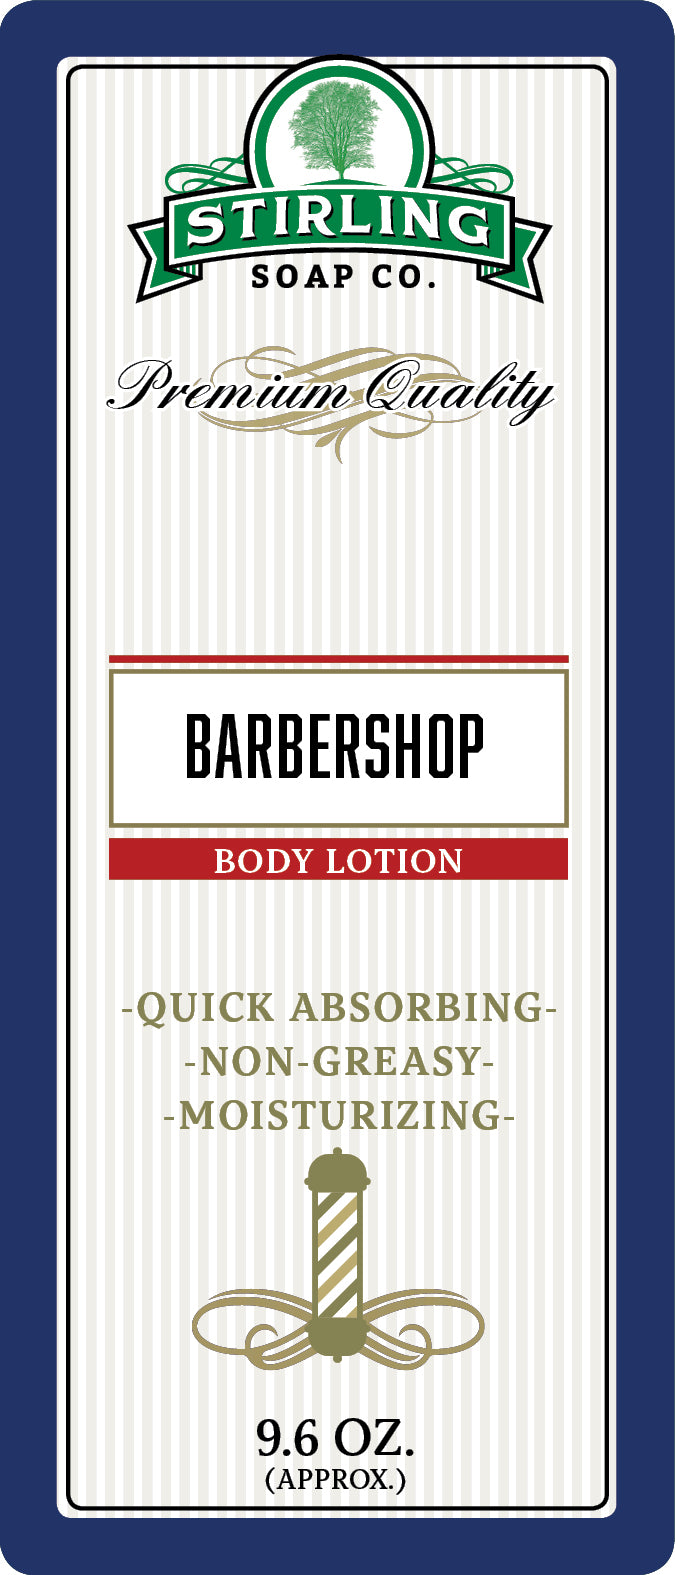 Barbershop - Body Lotion